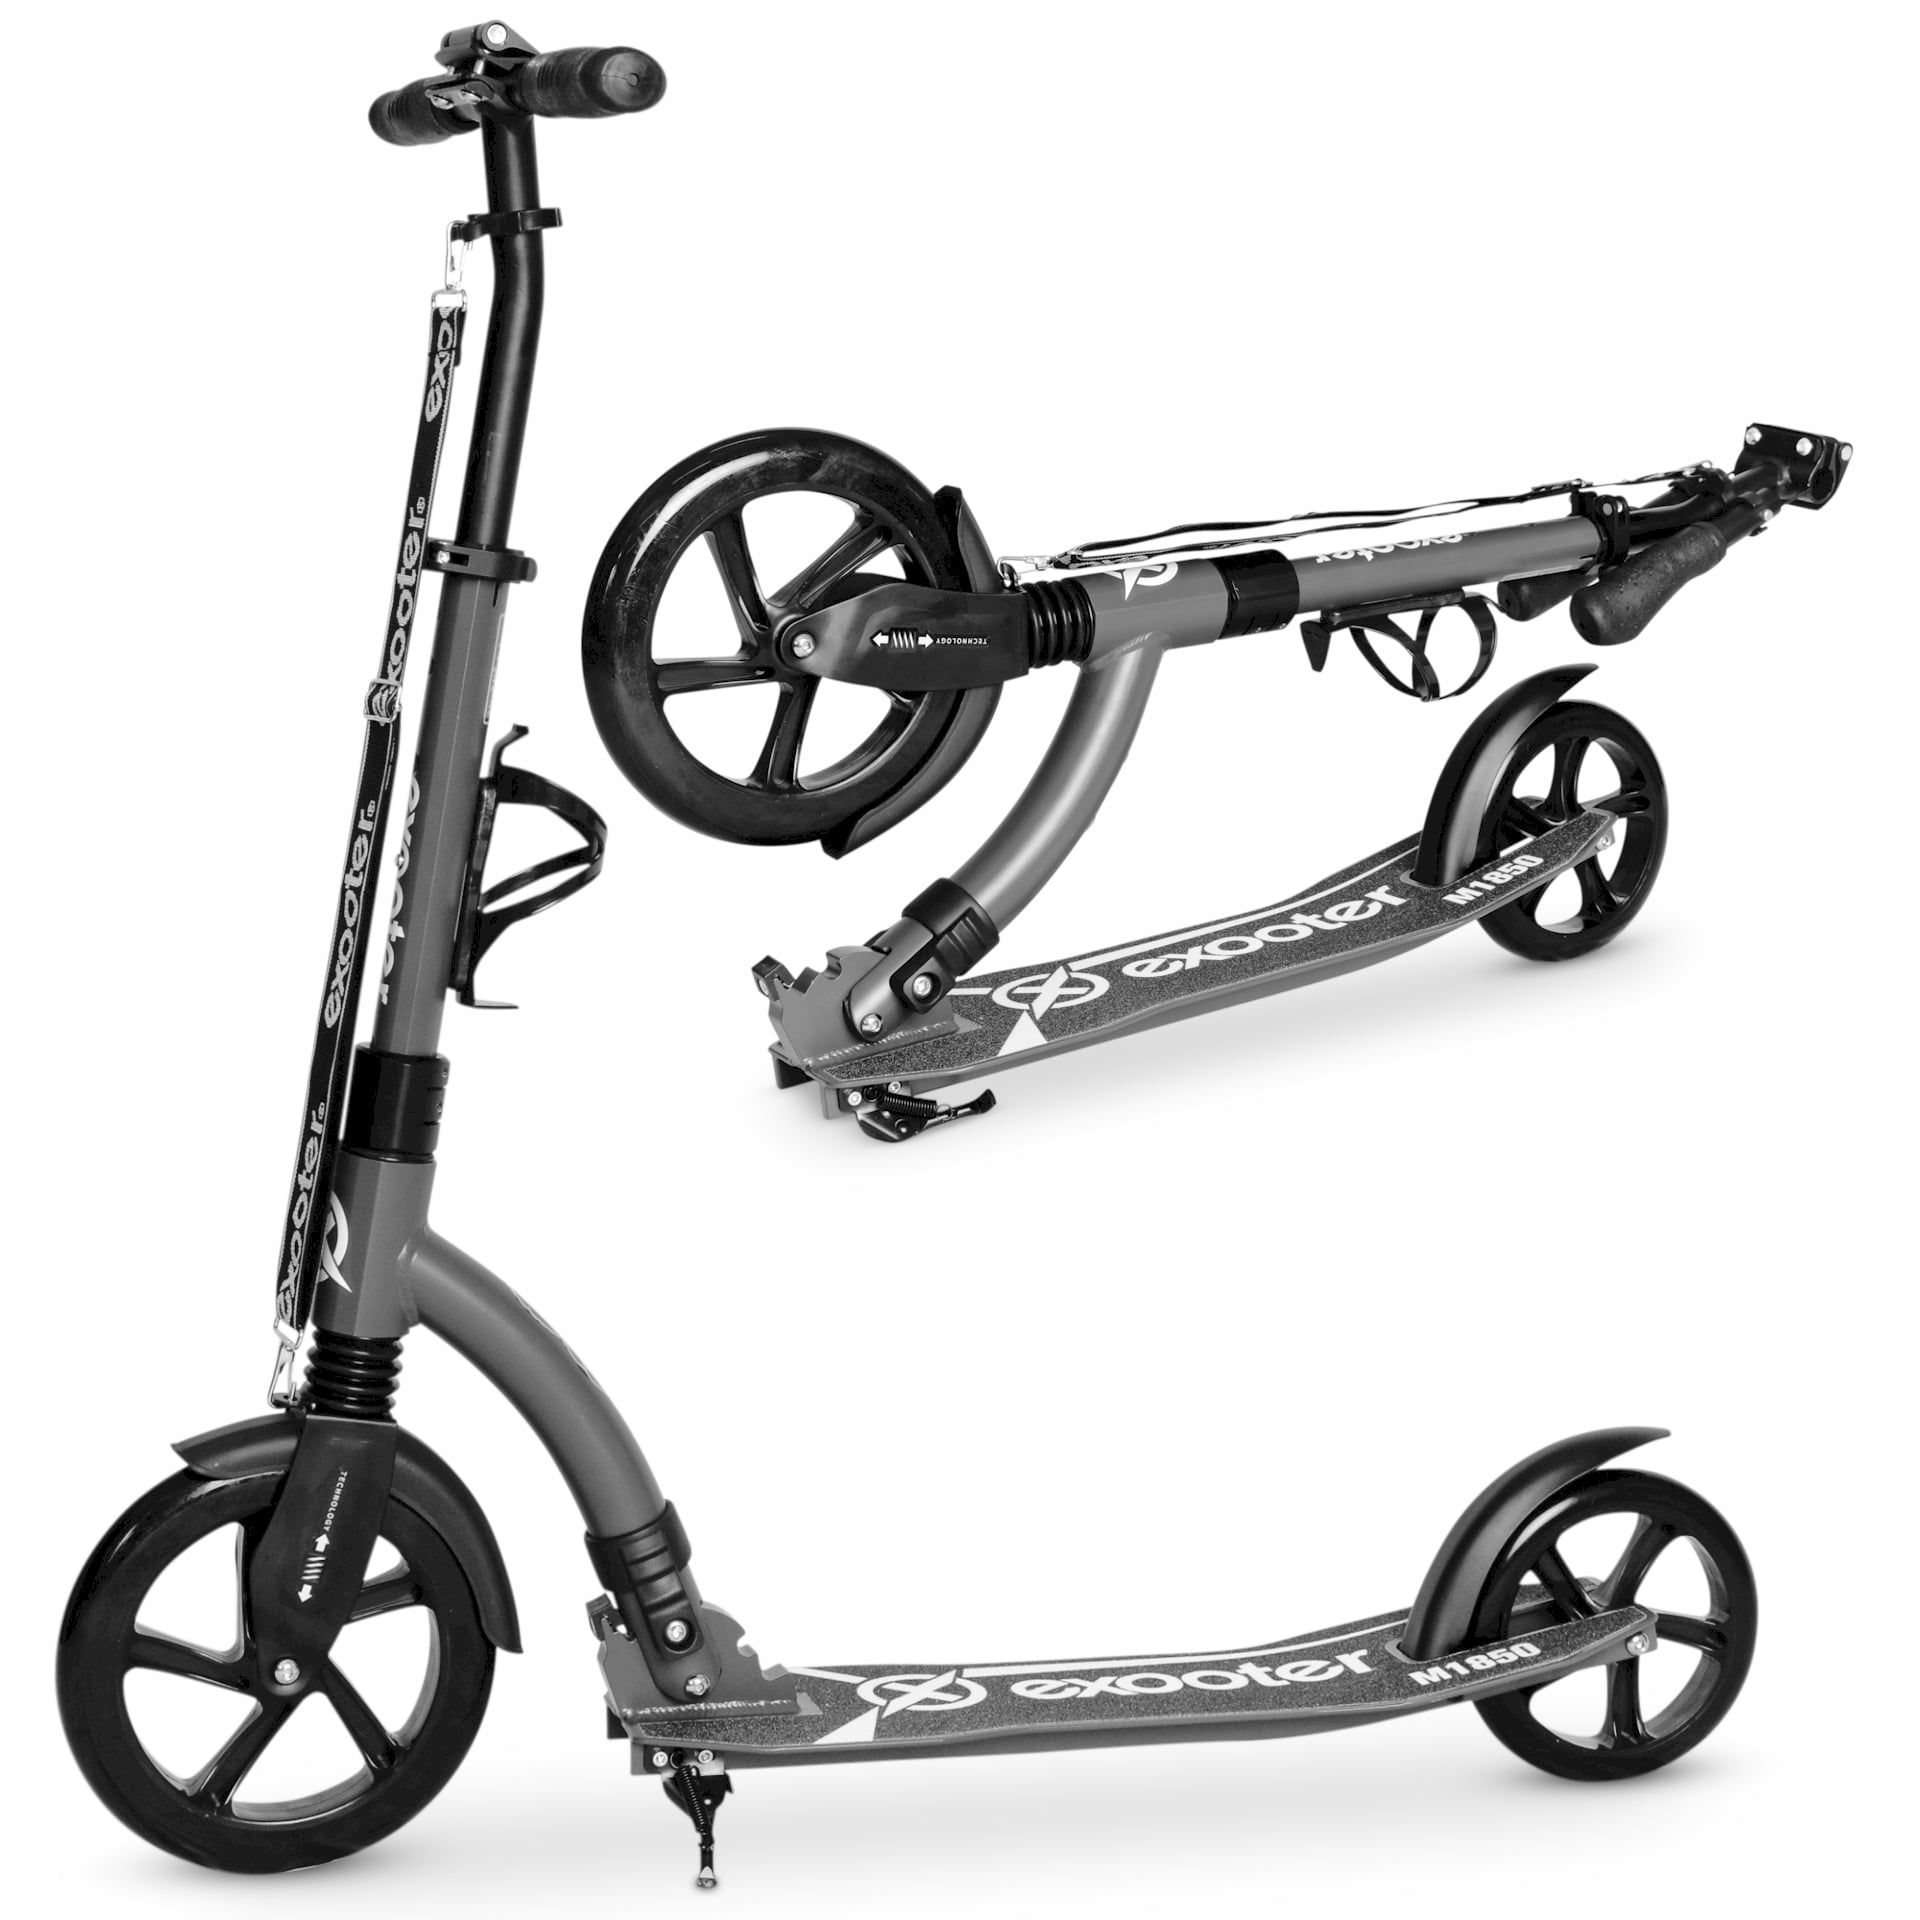 exooter m1850cb 6xl adult kick scooter with front shocks and 240mm Kymco Motor Scooters exooter m1850cb 6xl adult kick scooter with front shocks and 240mm 180mm black wheels in charcoal finish